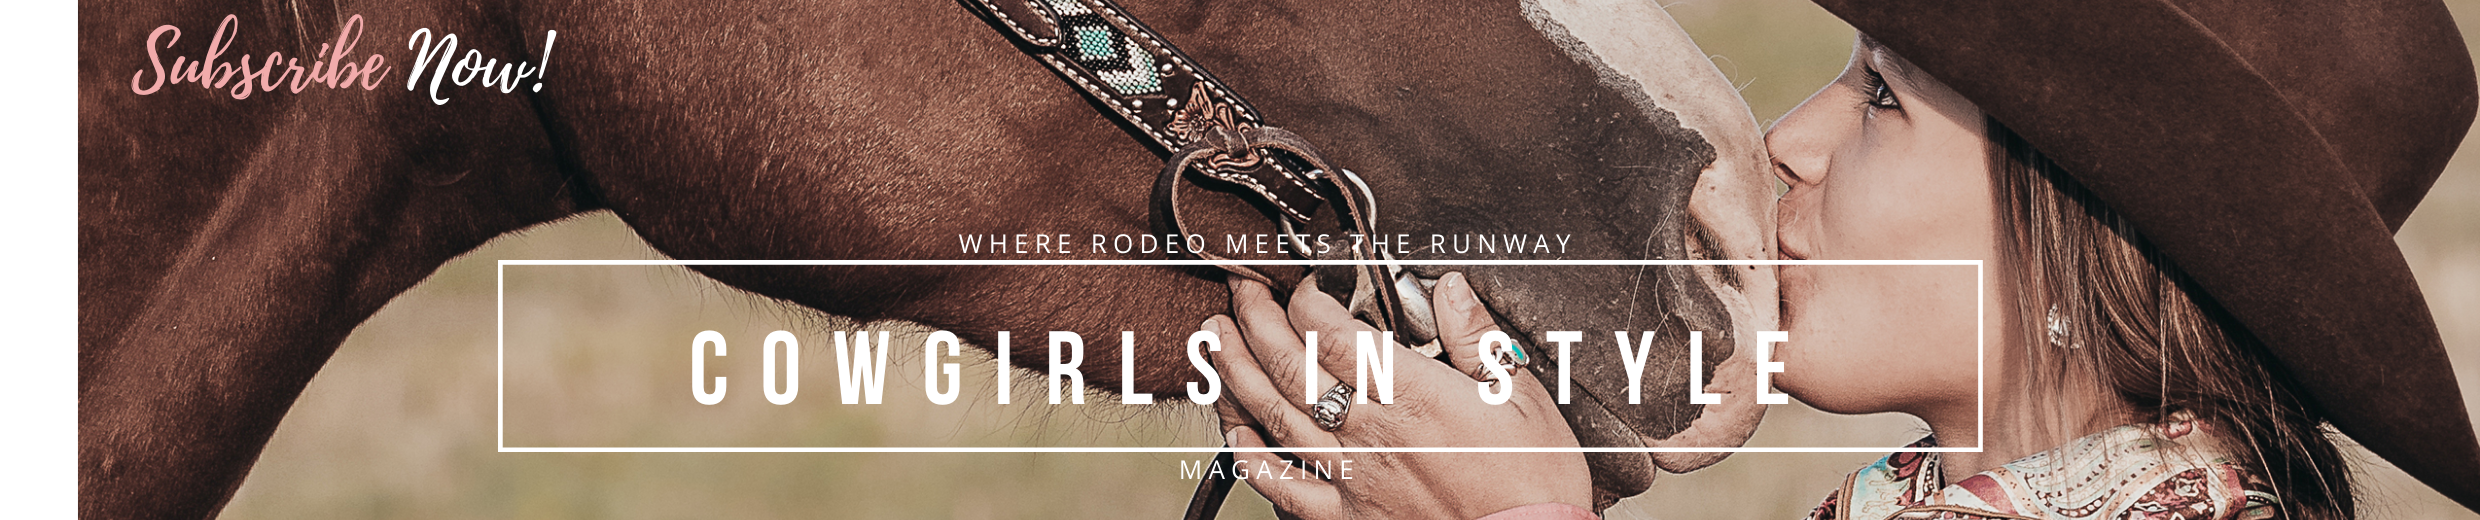 January 2019 - Cowgirls In Style Magazine